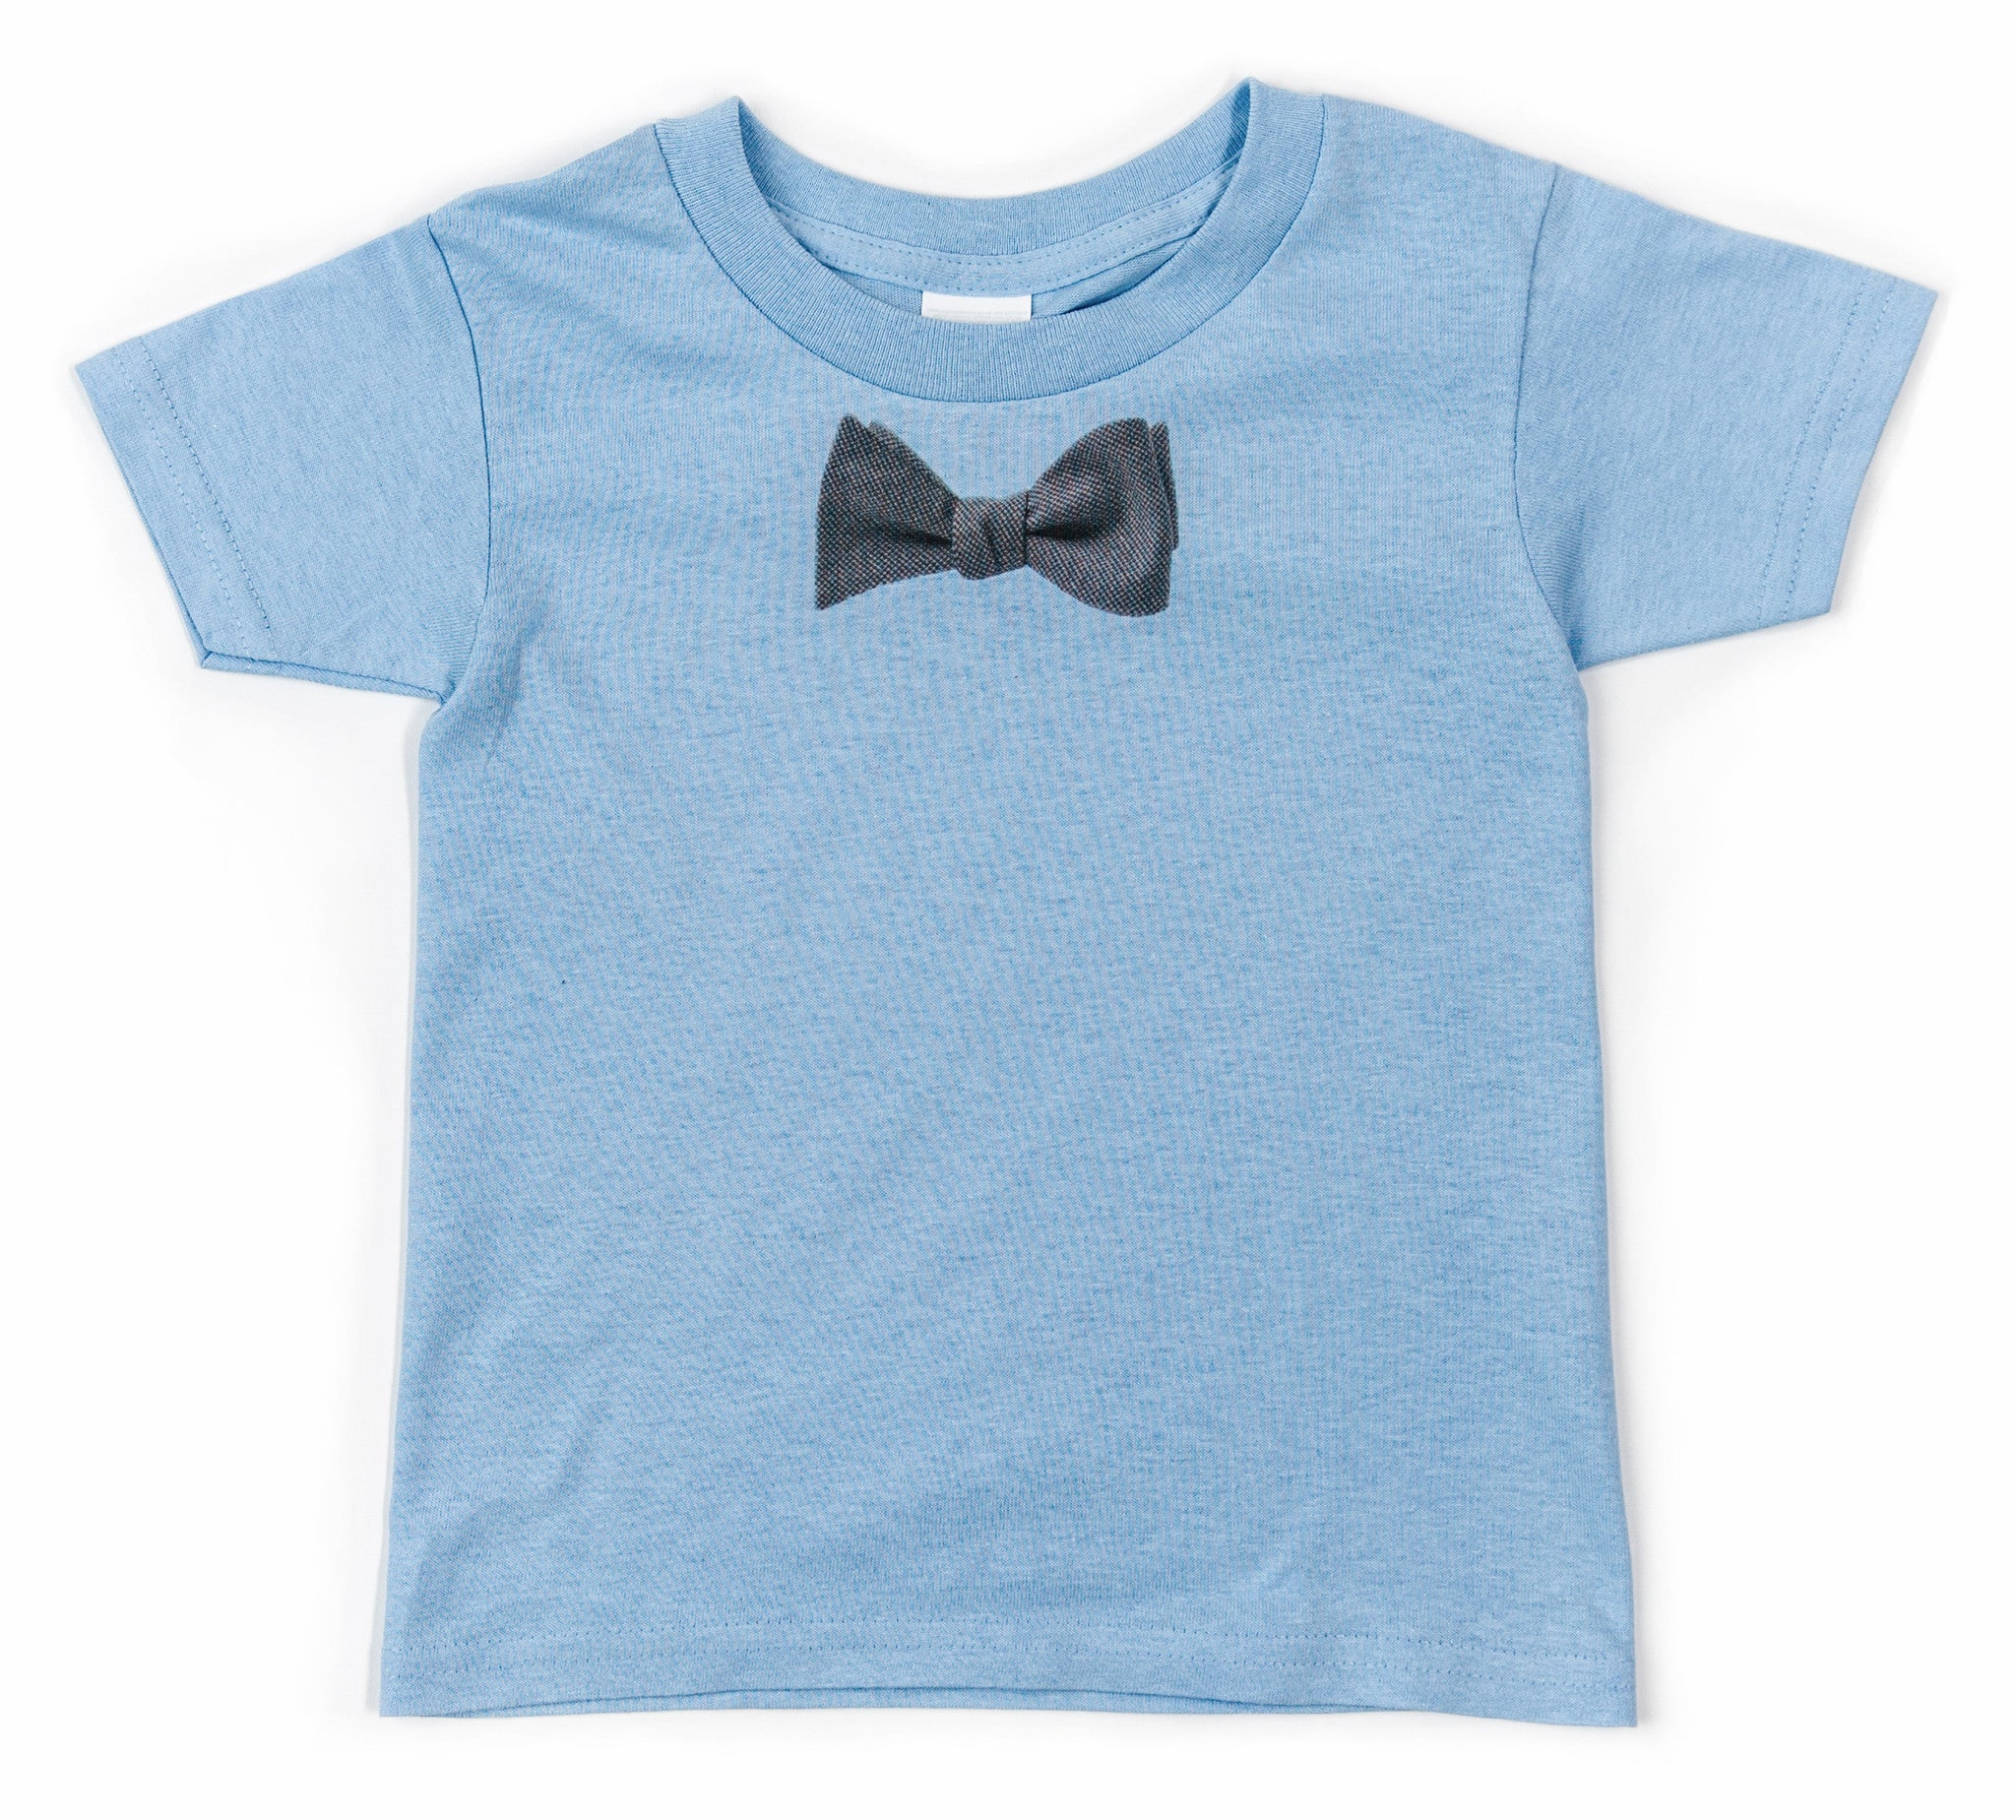 Toddler bow tie t shirt the good south for Baby shirt and bow tie